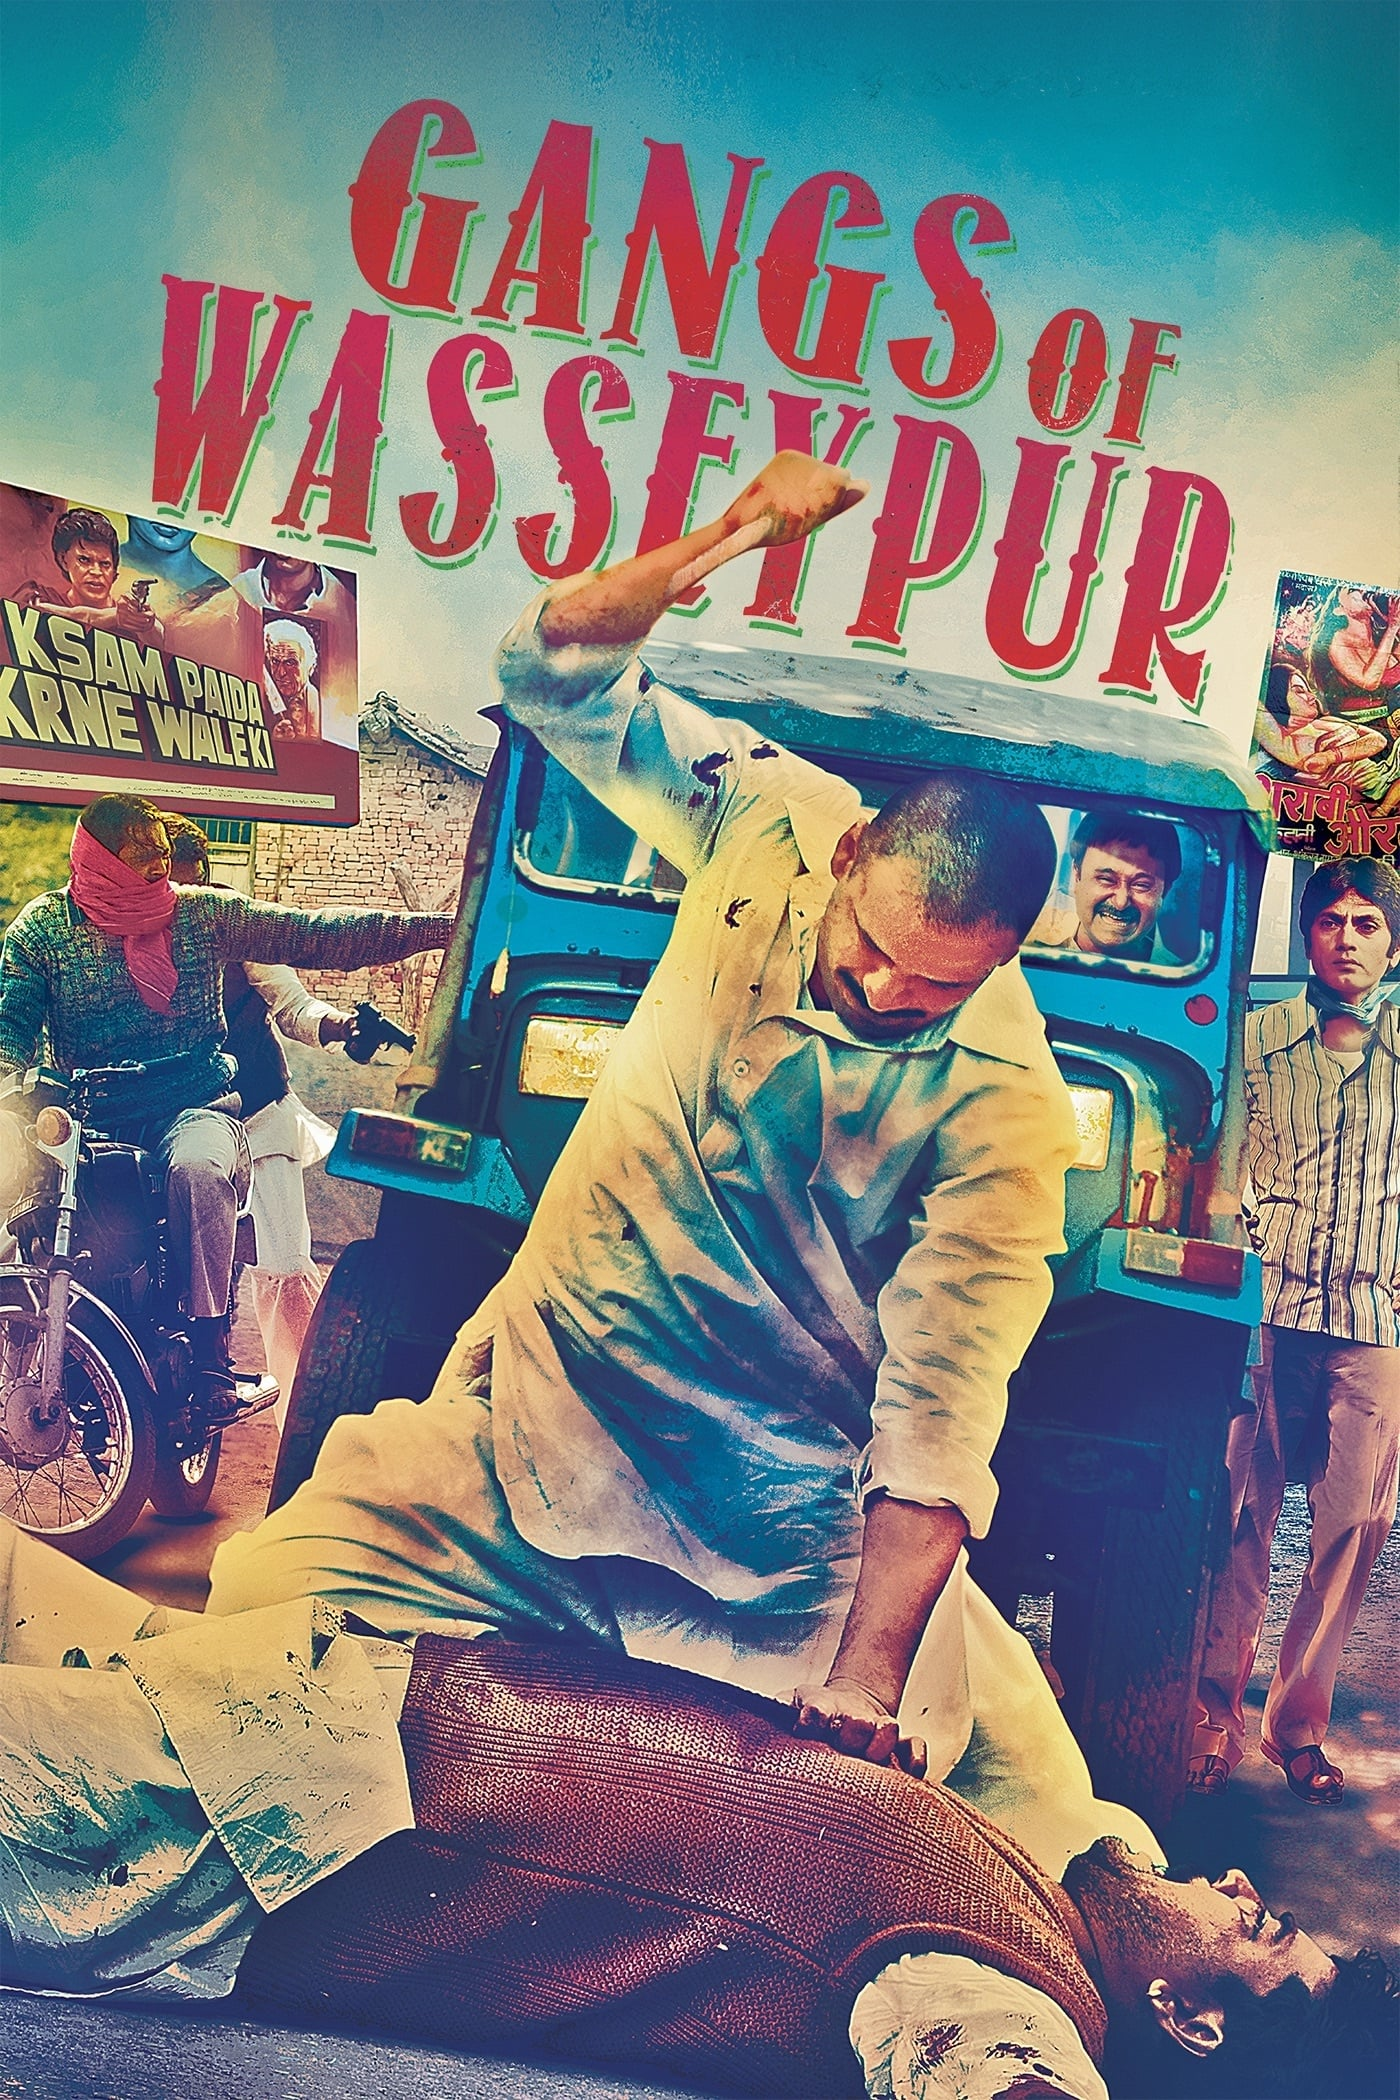 Gangs of Wasseypur – Part 1 2012 BluRay x264 1080p [4.45 GB] 720p [1.40 GB] 480p [560 MB] Hindi DD 5.1 | G-Drive